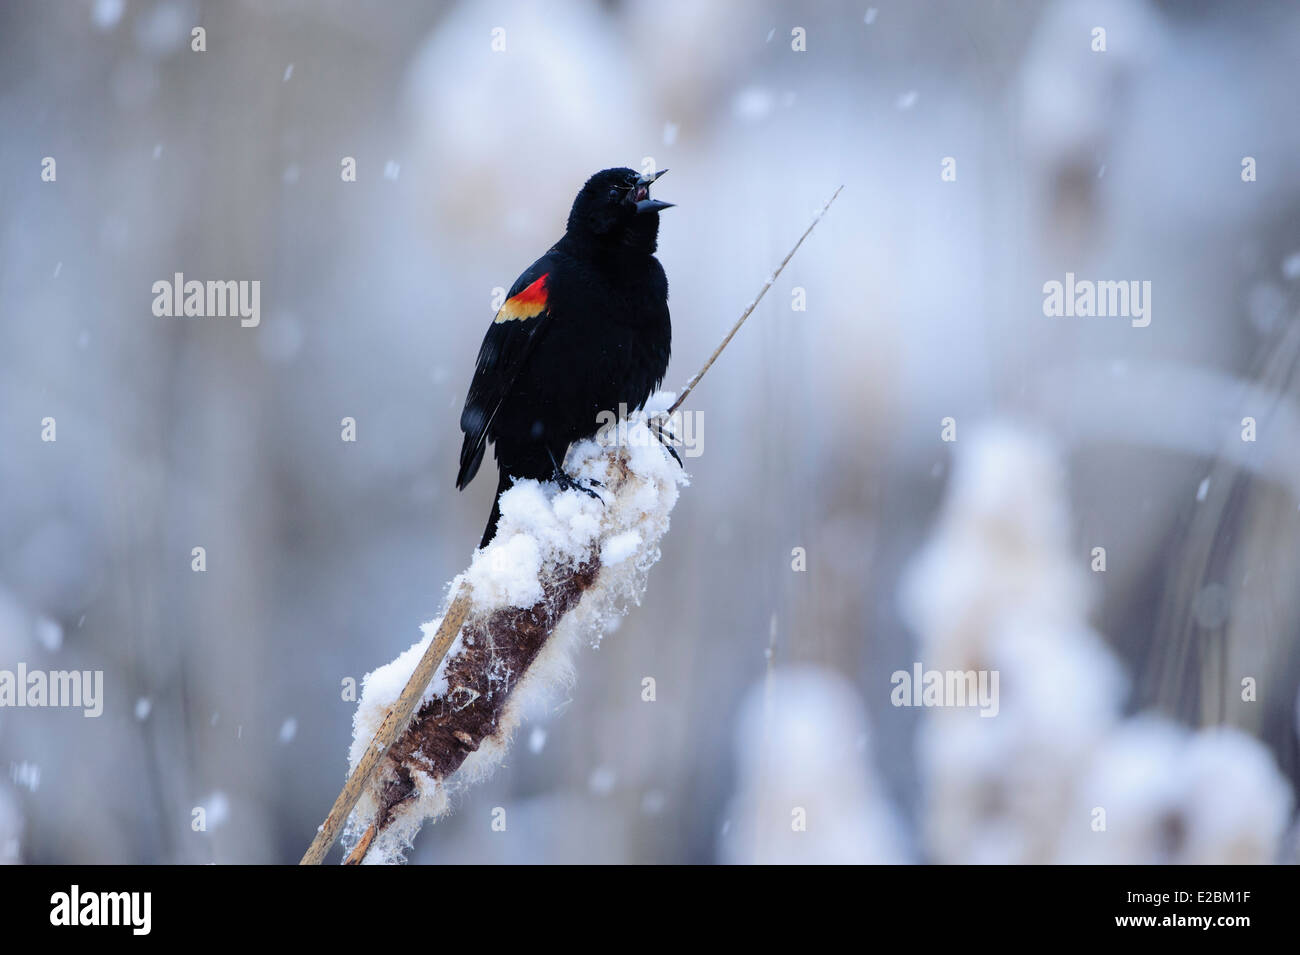 A red-winged blackbird sings for a mate during an early Spring snowfall, Missoula, Montana - Stock Image